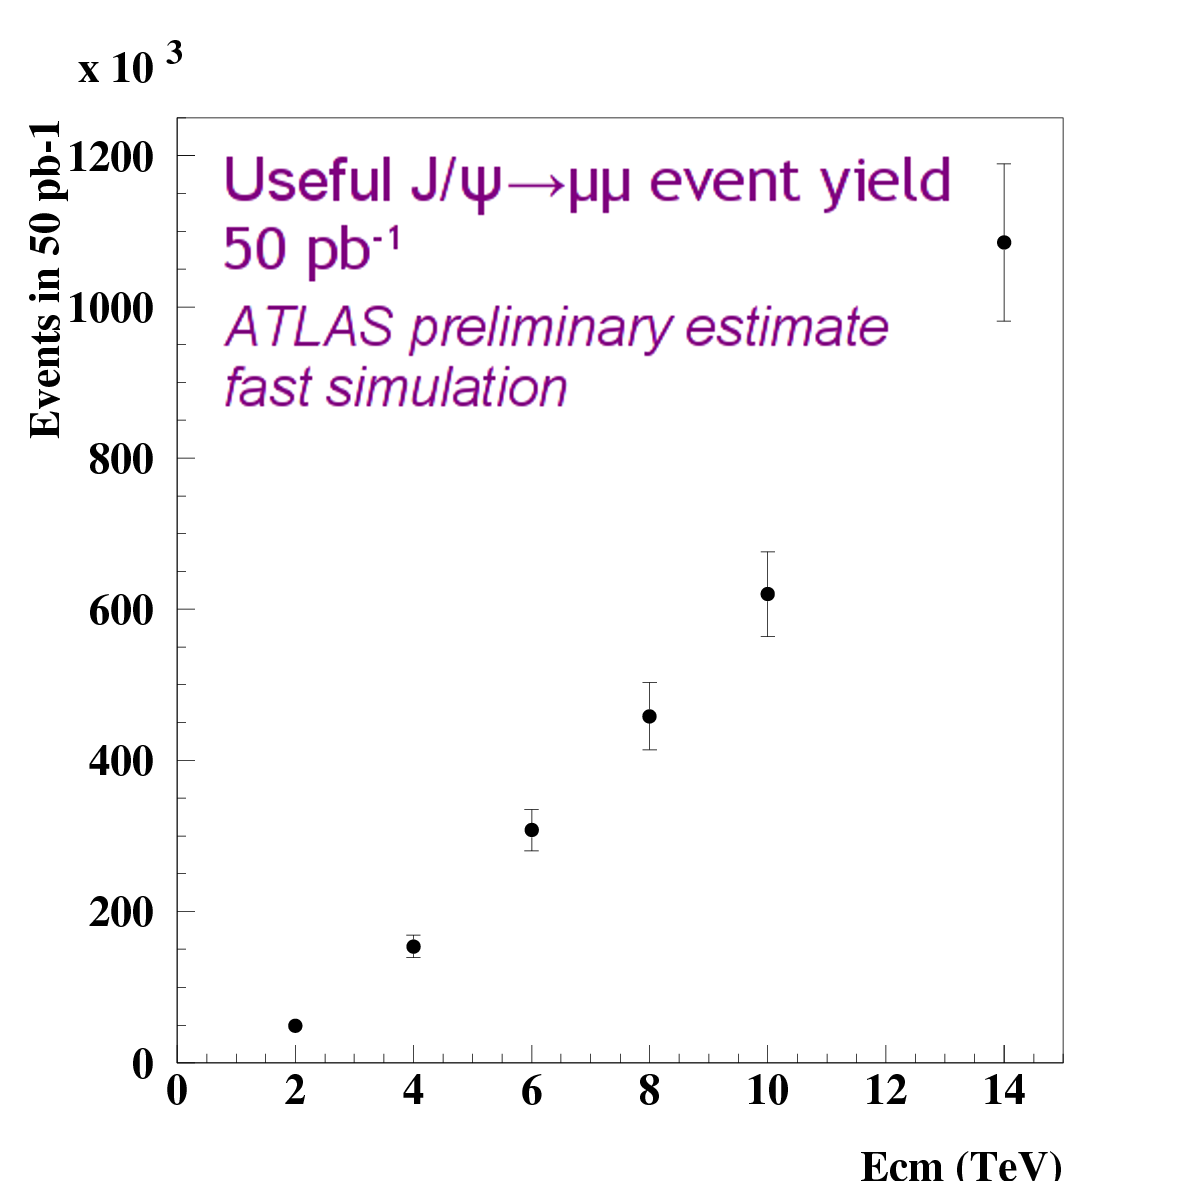 J/psi yield vs Ecm for 50pb-1